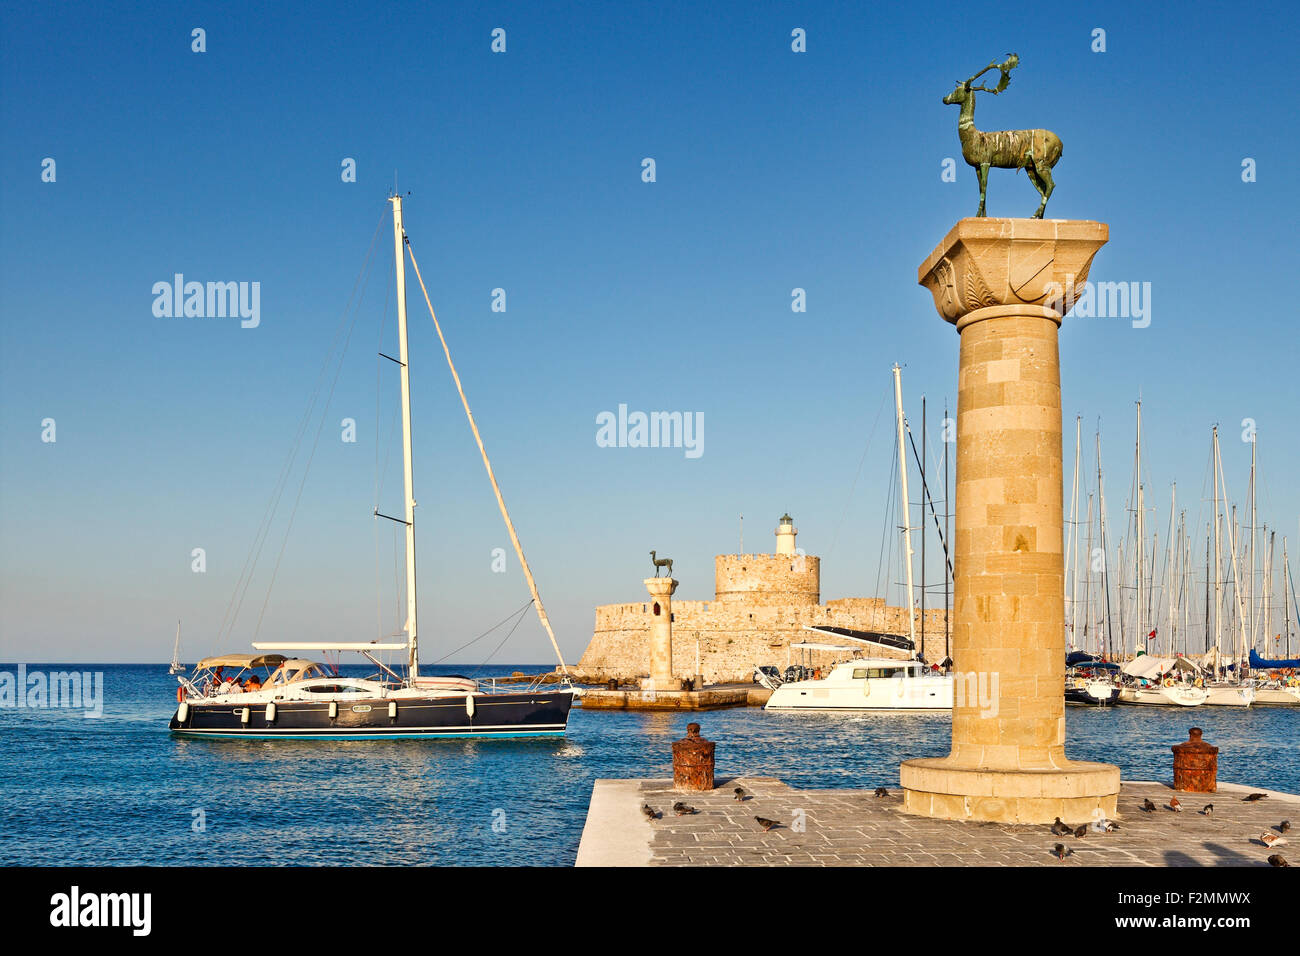 The entrance with the deers of the old port of Rhodes, Greece - Stock Image